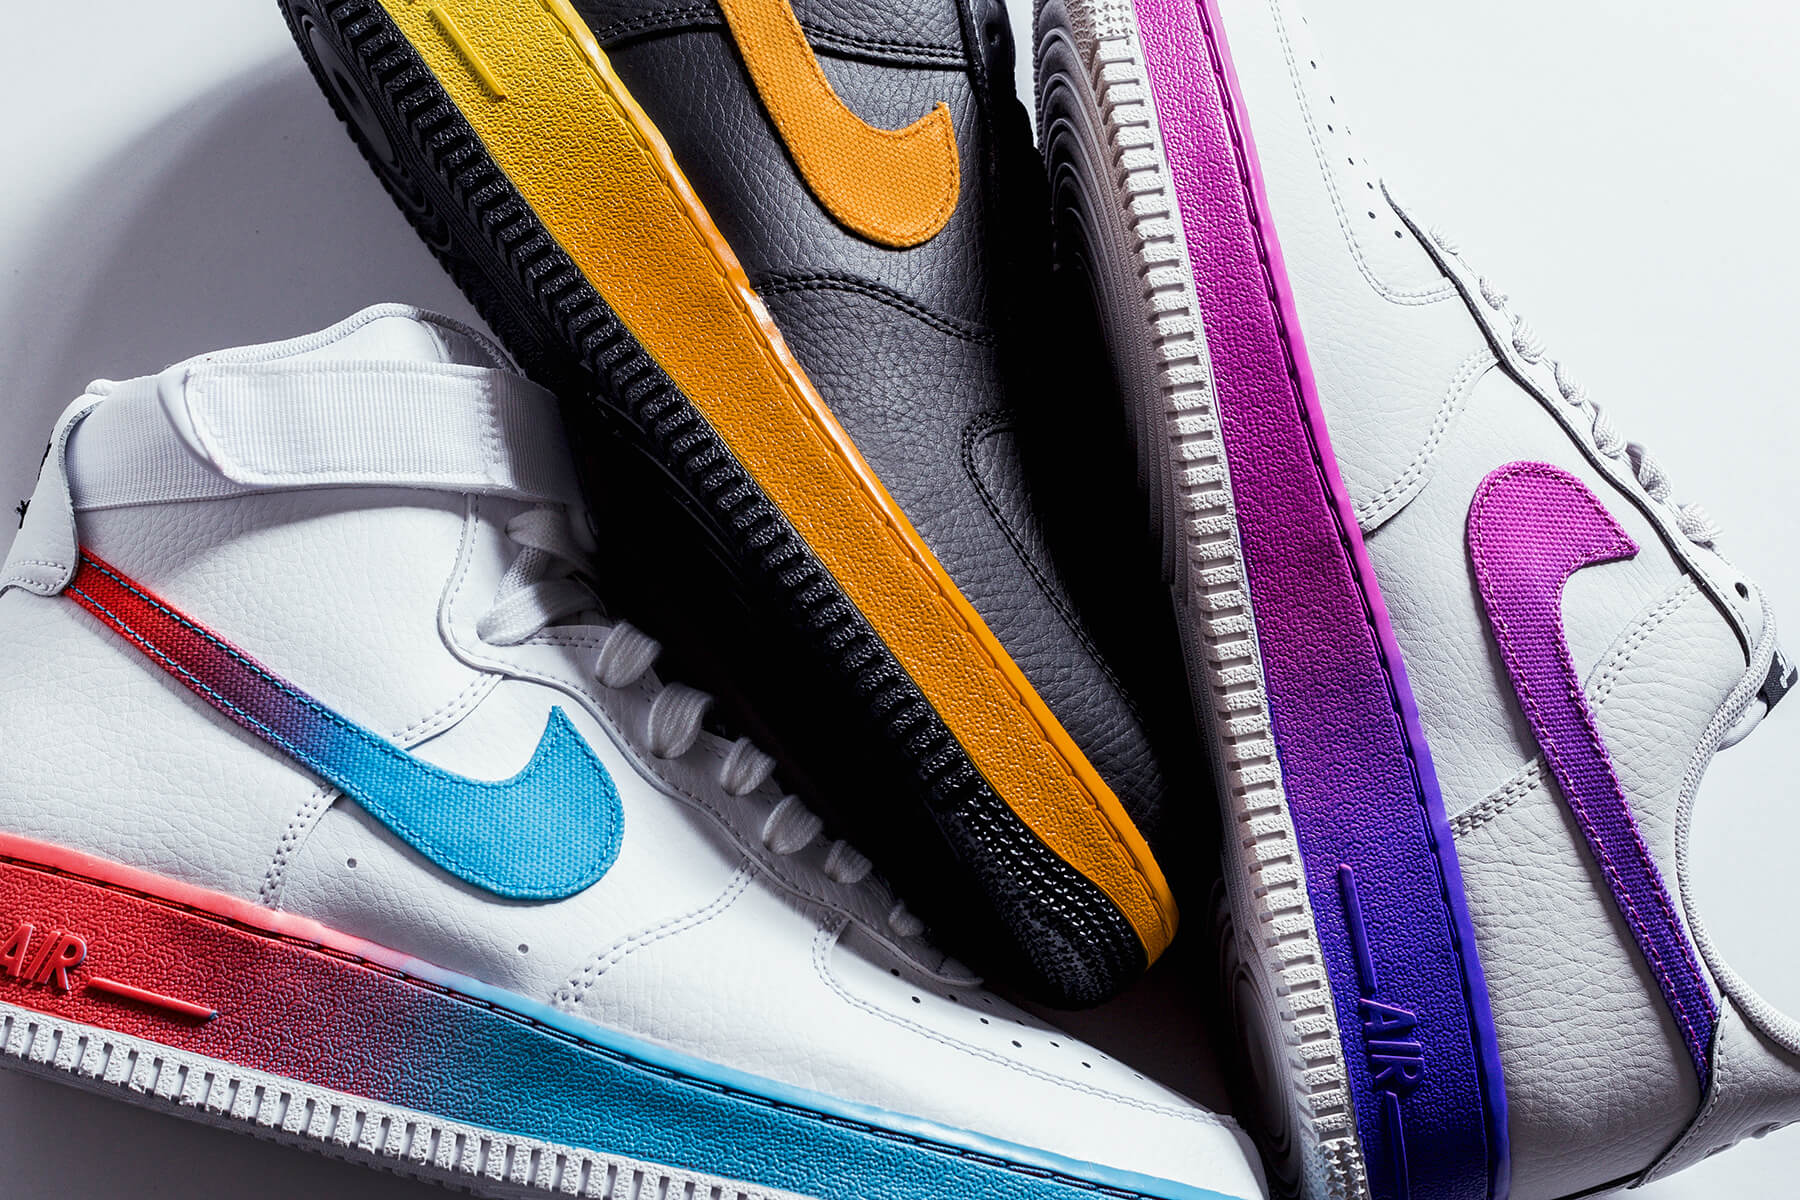 Nike Air Force 1 07 Lv8 In Three Gradient Colorways For Summer Eukicks